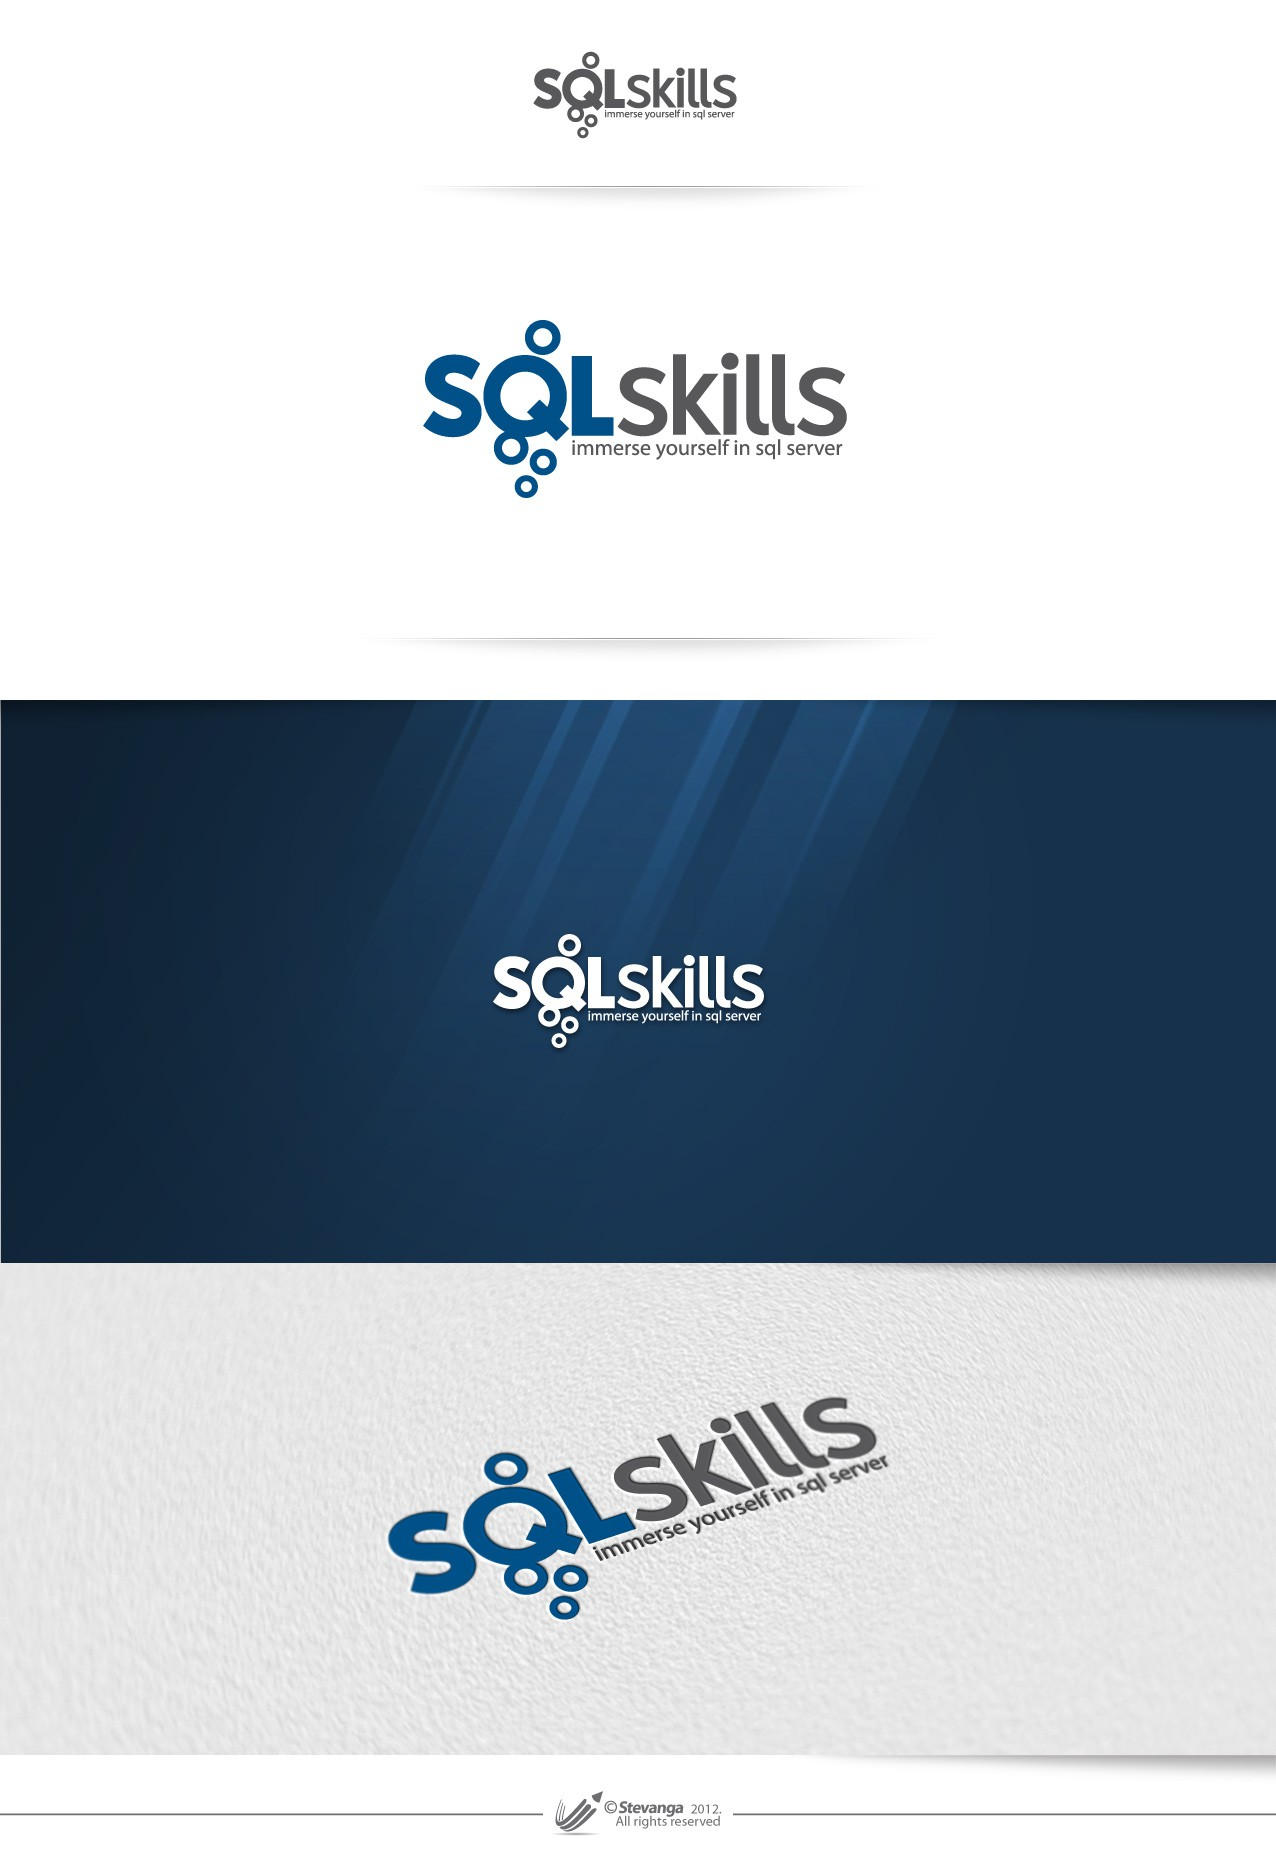 Create the next logo for SQLskills